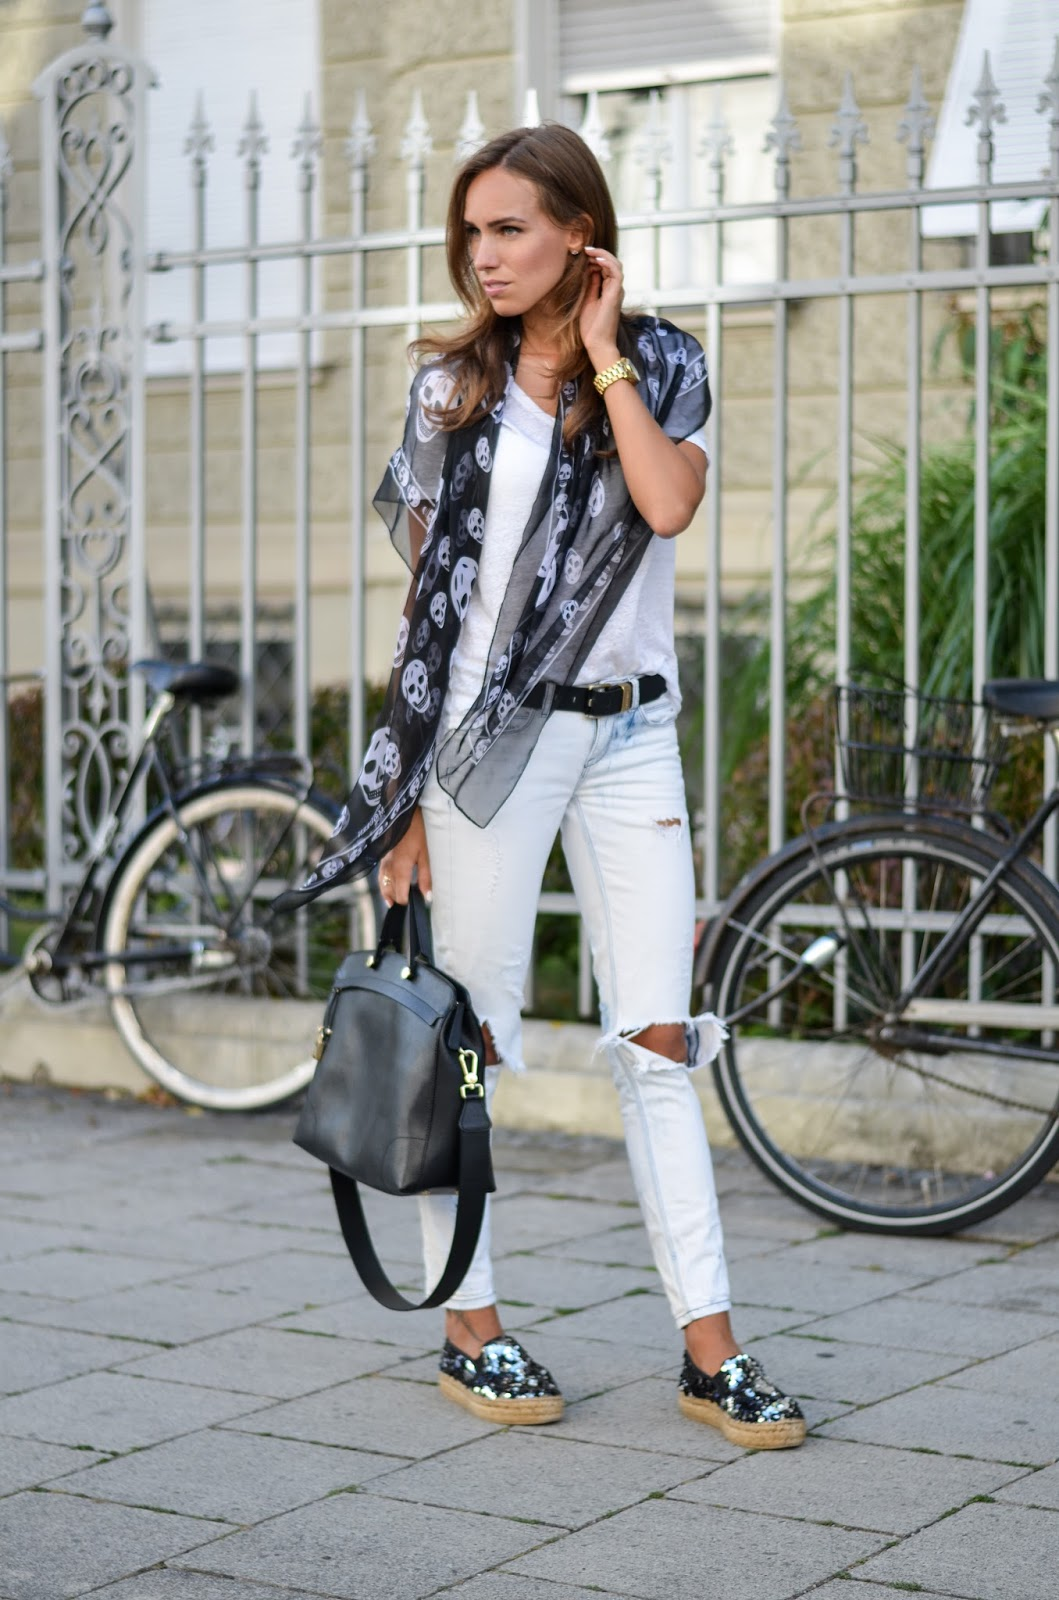 kristjaana mere white casual outfit black accessories